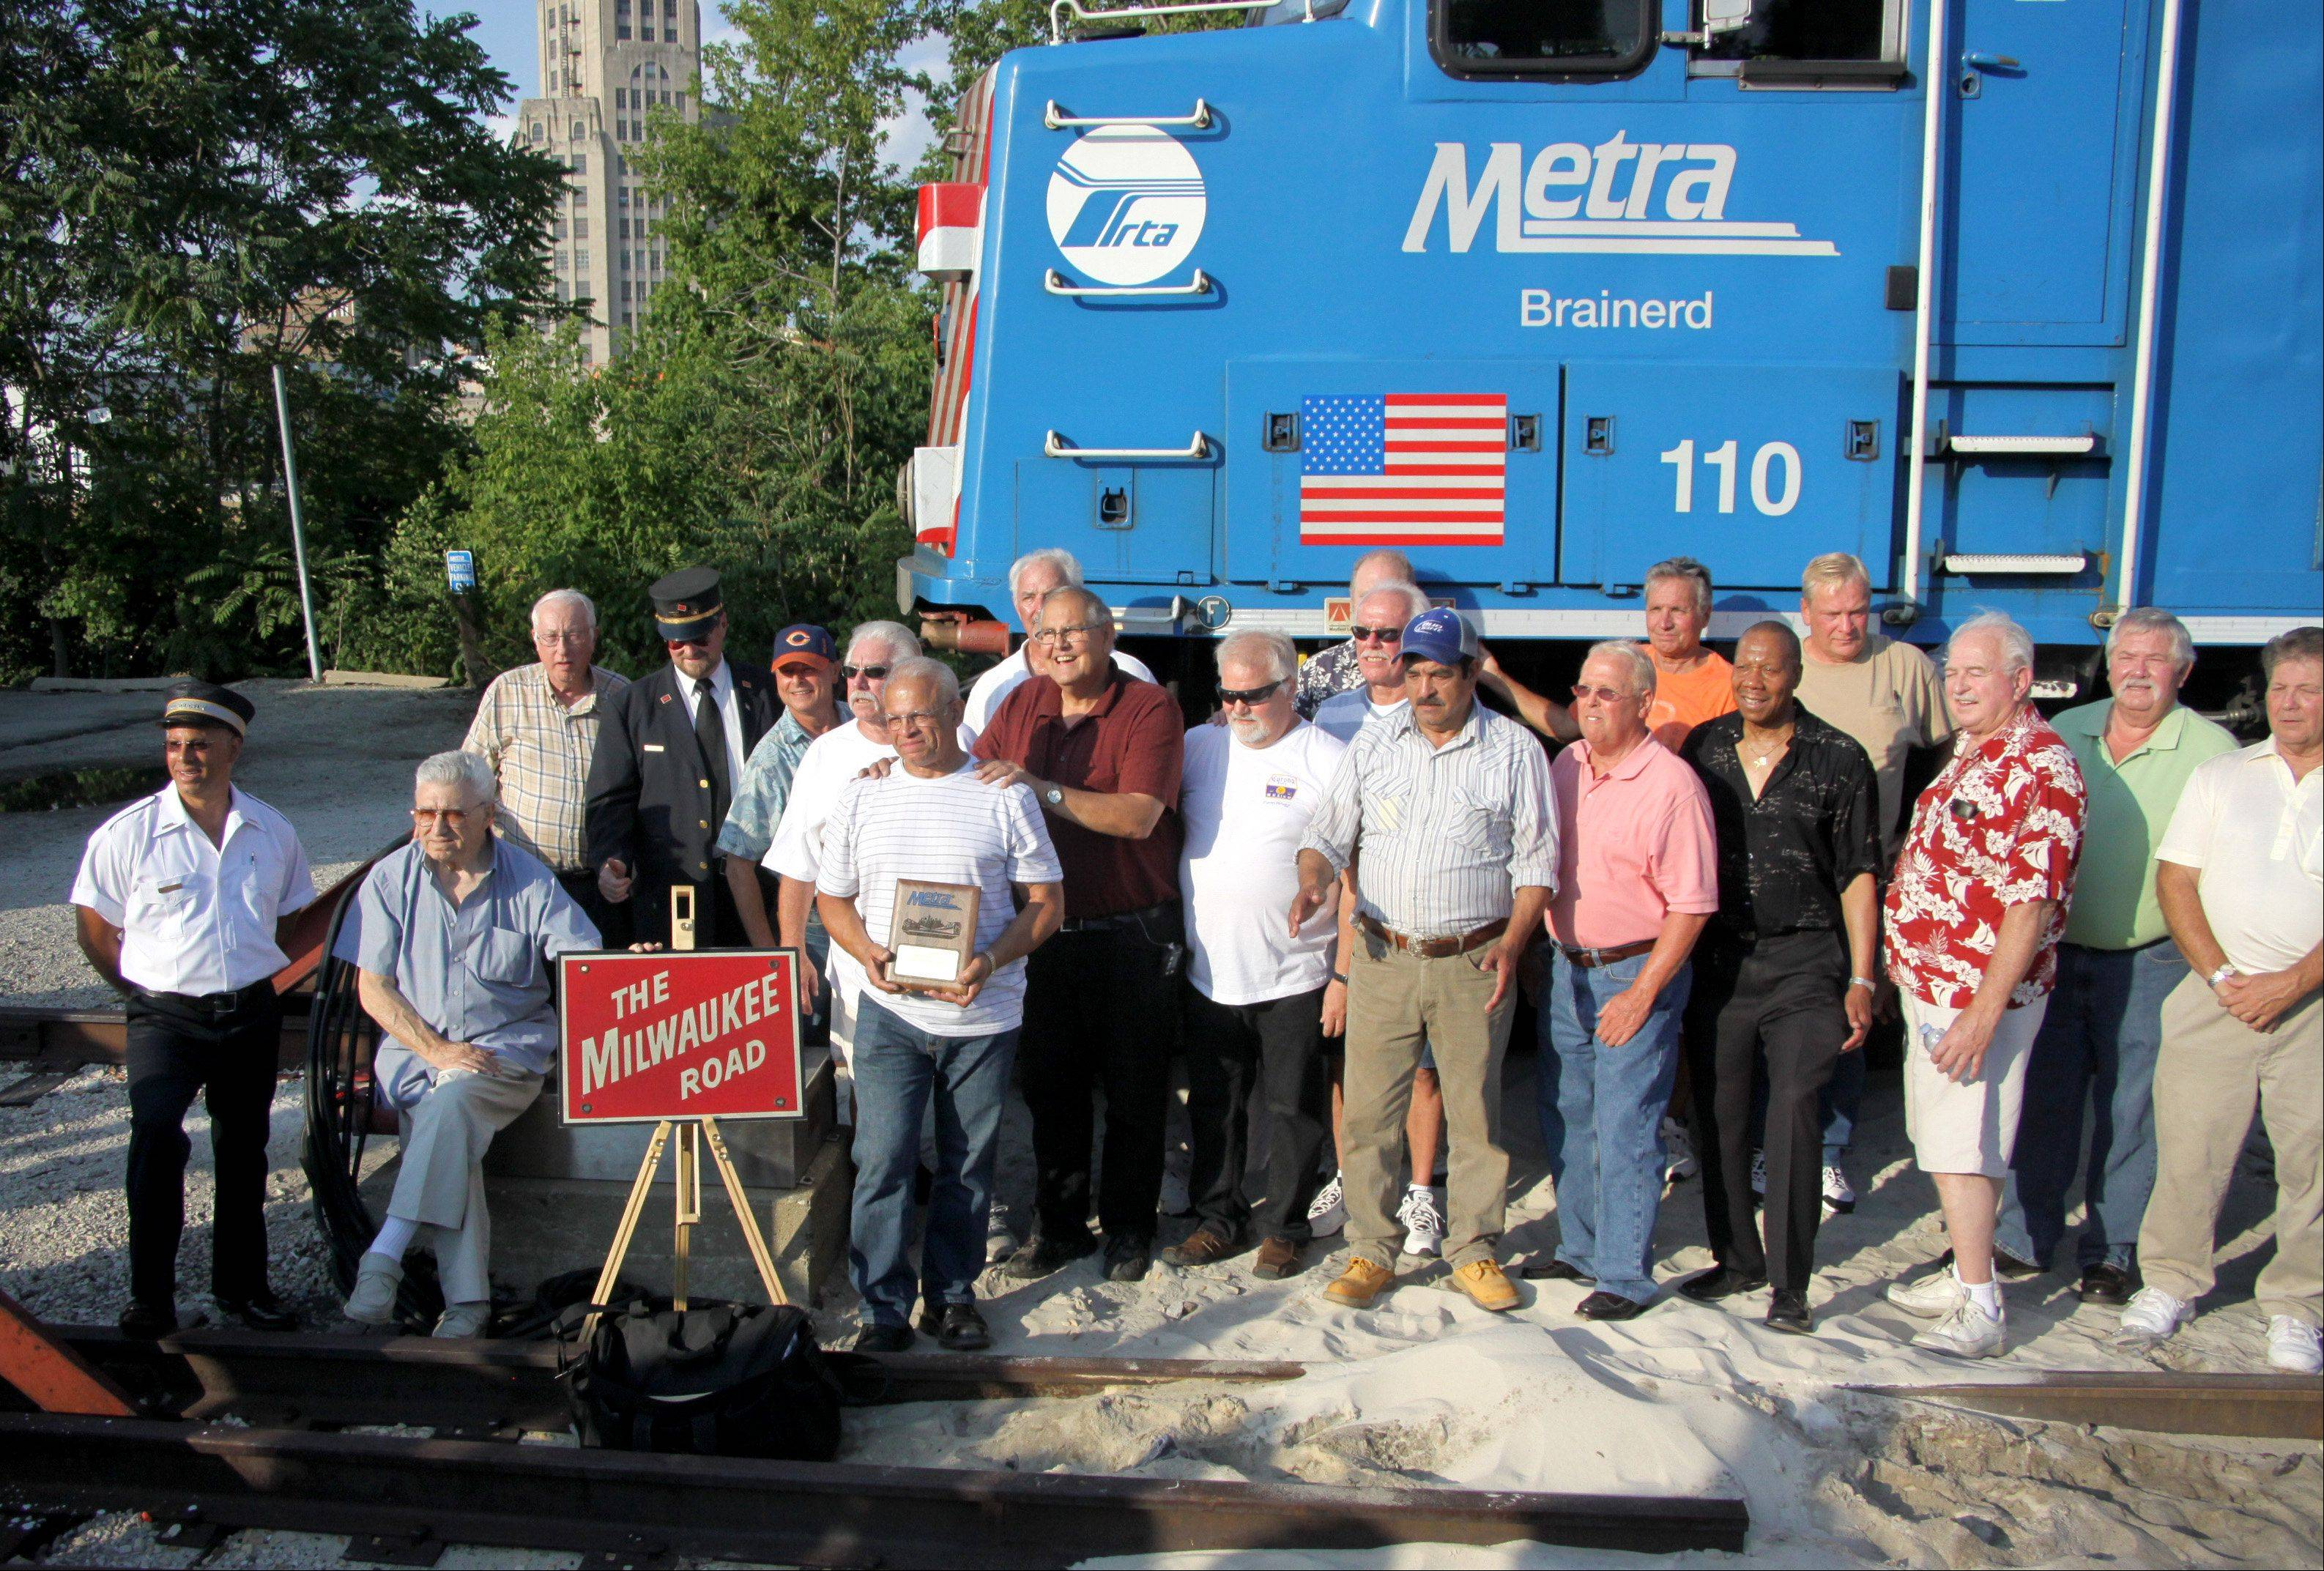 Metra engineer Hector Feliciano poses with several retired and current Metra personnel after Feliciano piloted a train for the final time upon arrival at the Chicago Street Station in Elgin on Tuesday evening. Feliciano retired after 42 years of service.